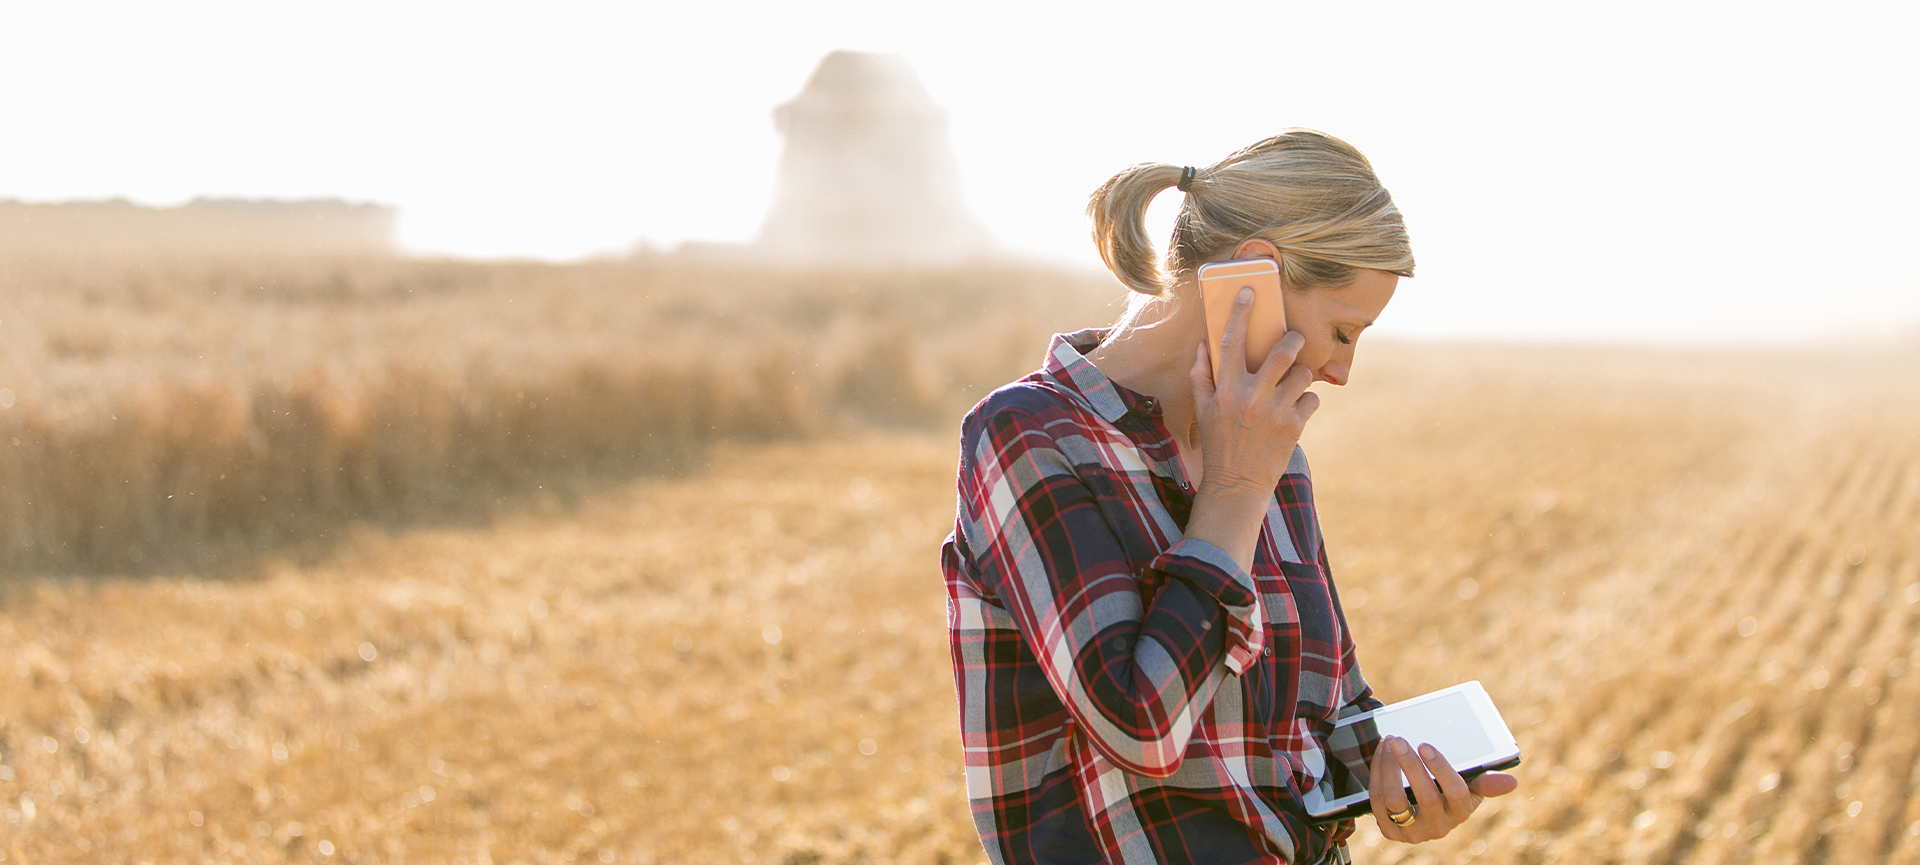 Woman standing in dry field looking at ipad and speaking on mobile phone